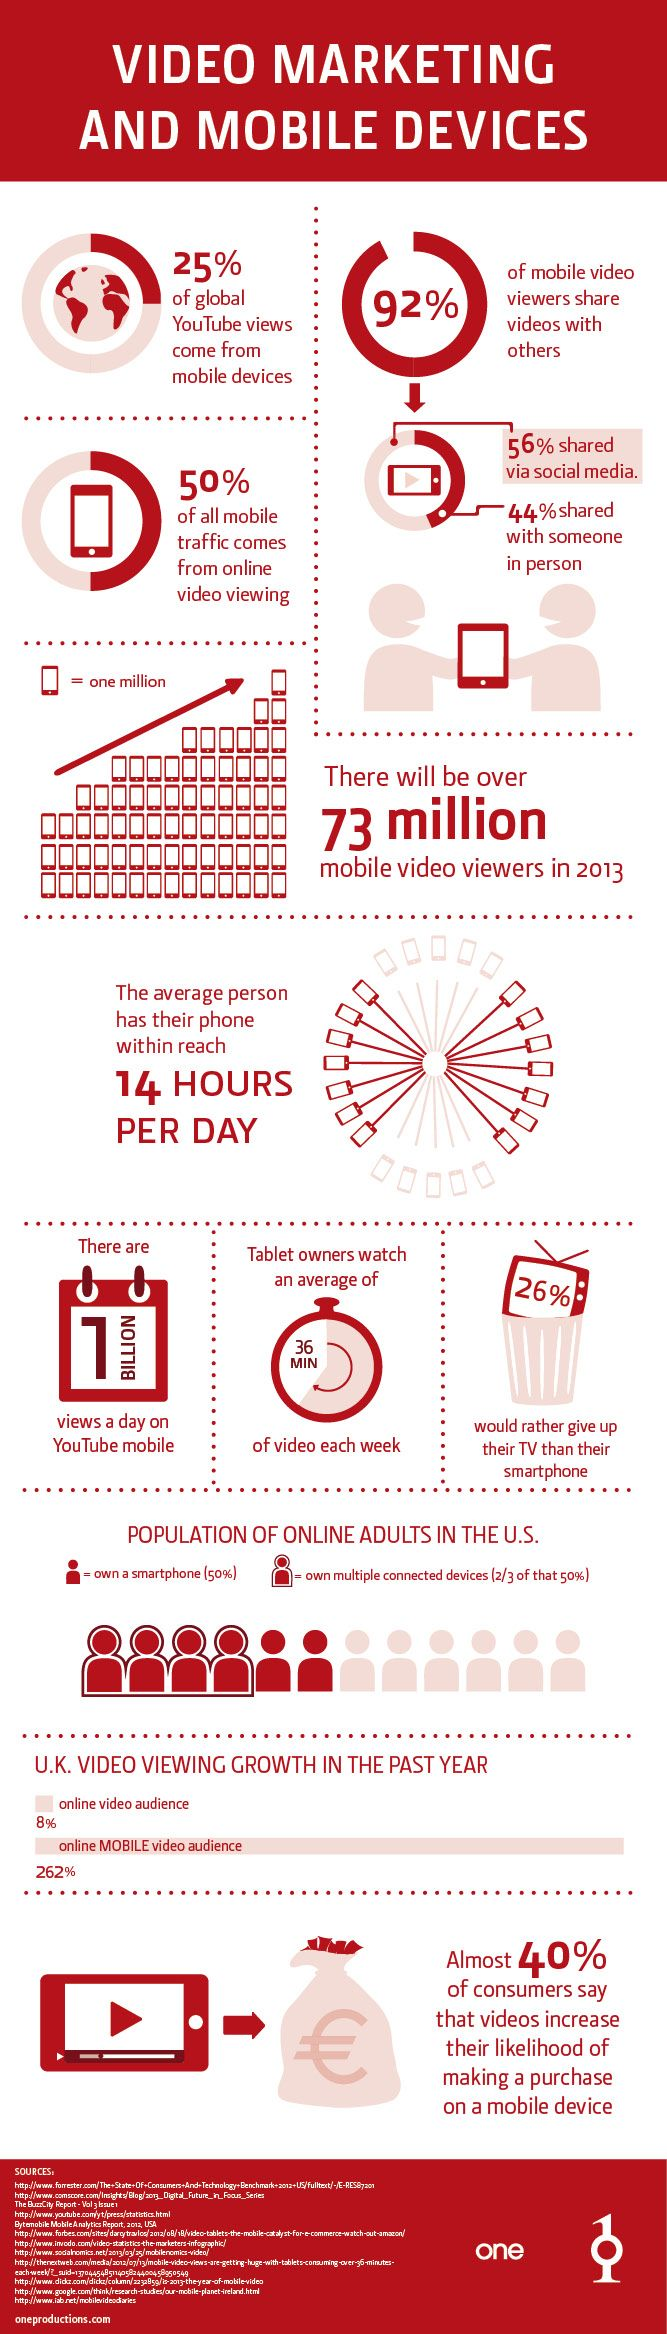 Mobile Video Marketing Infographic